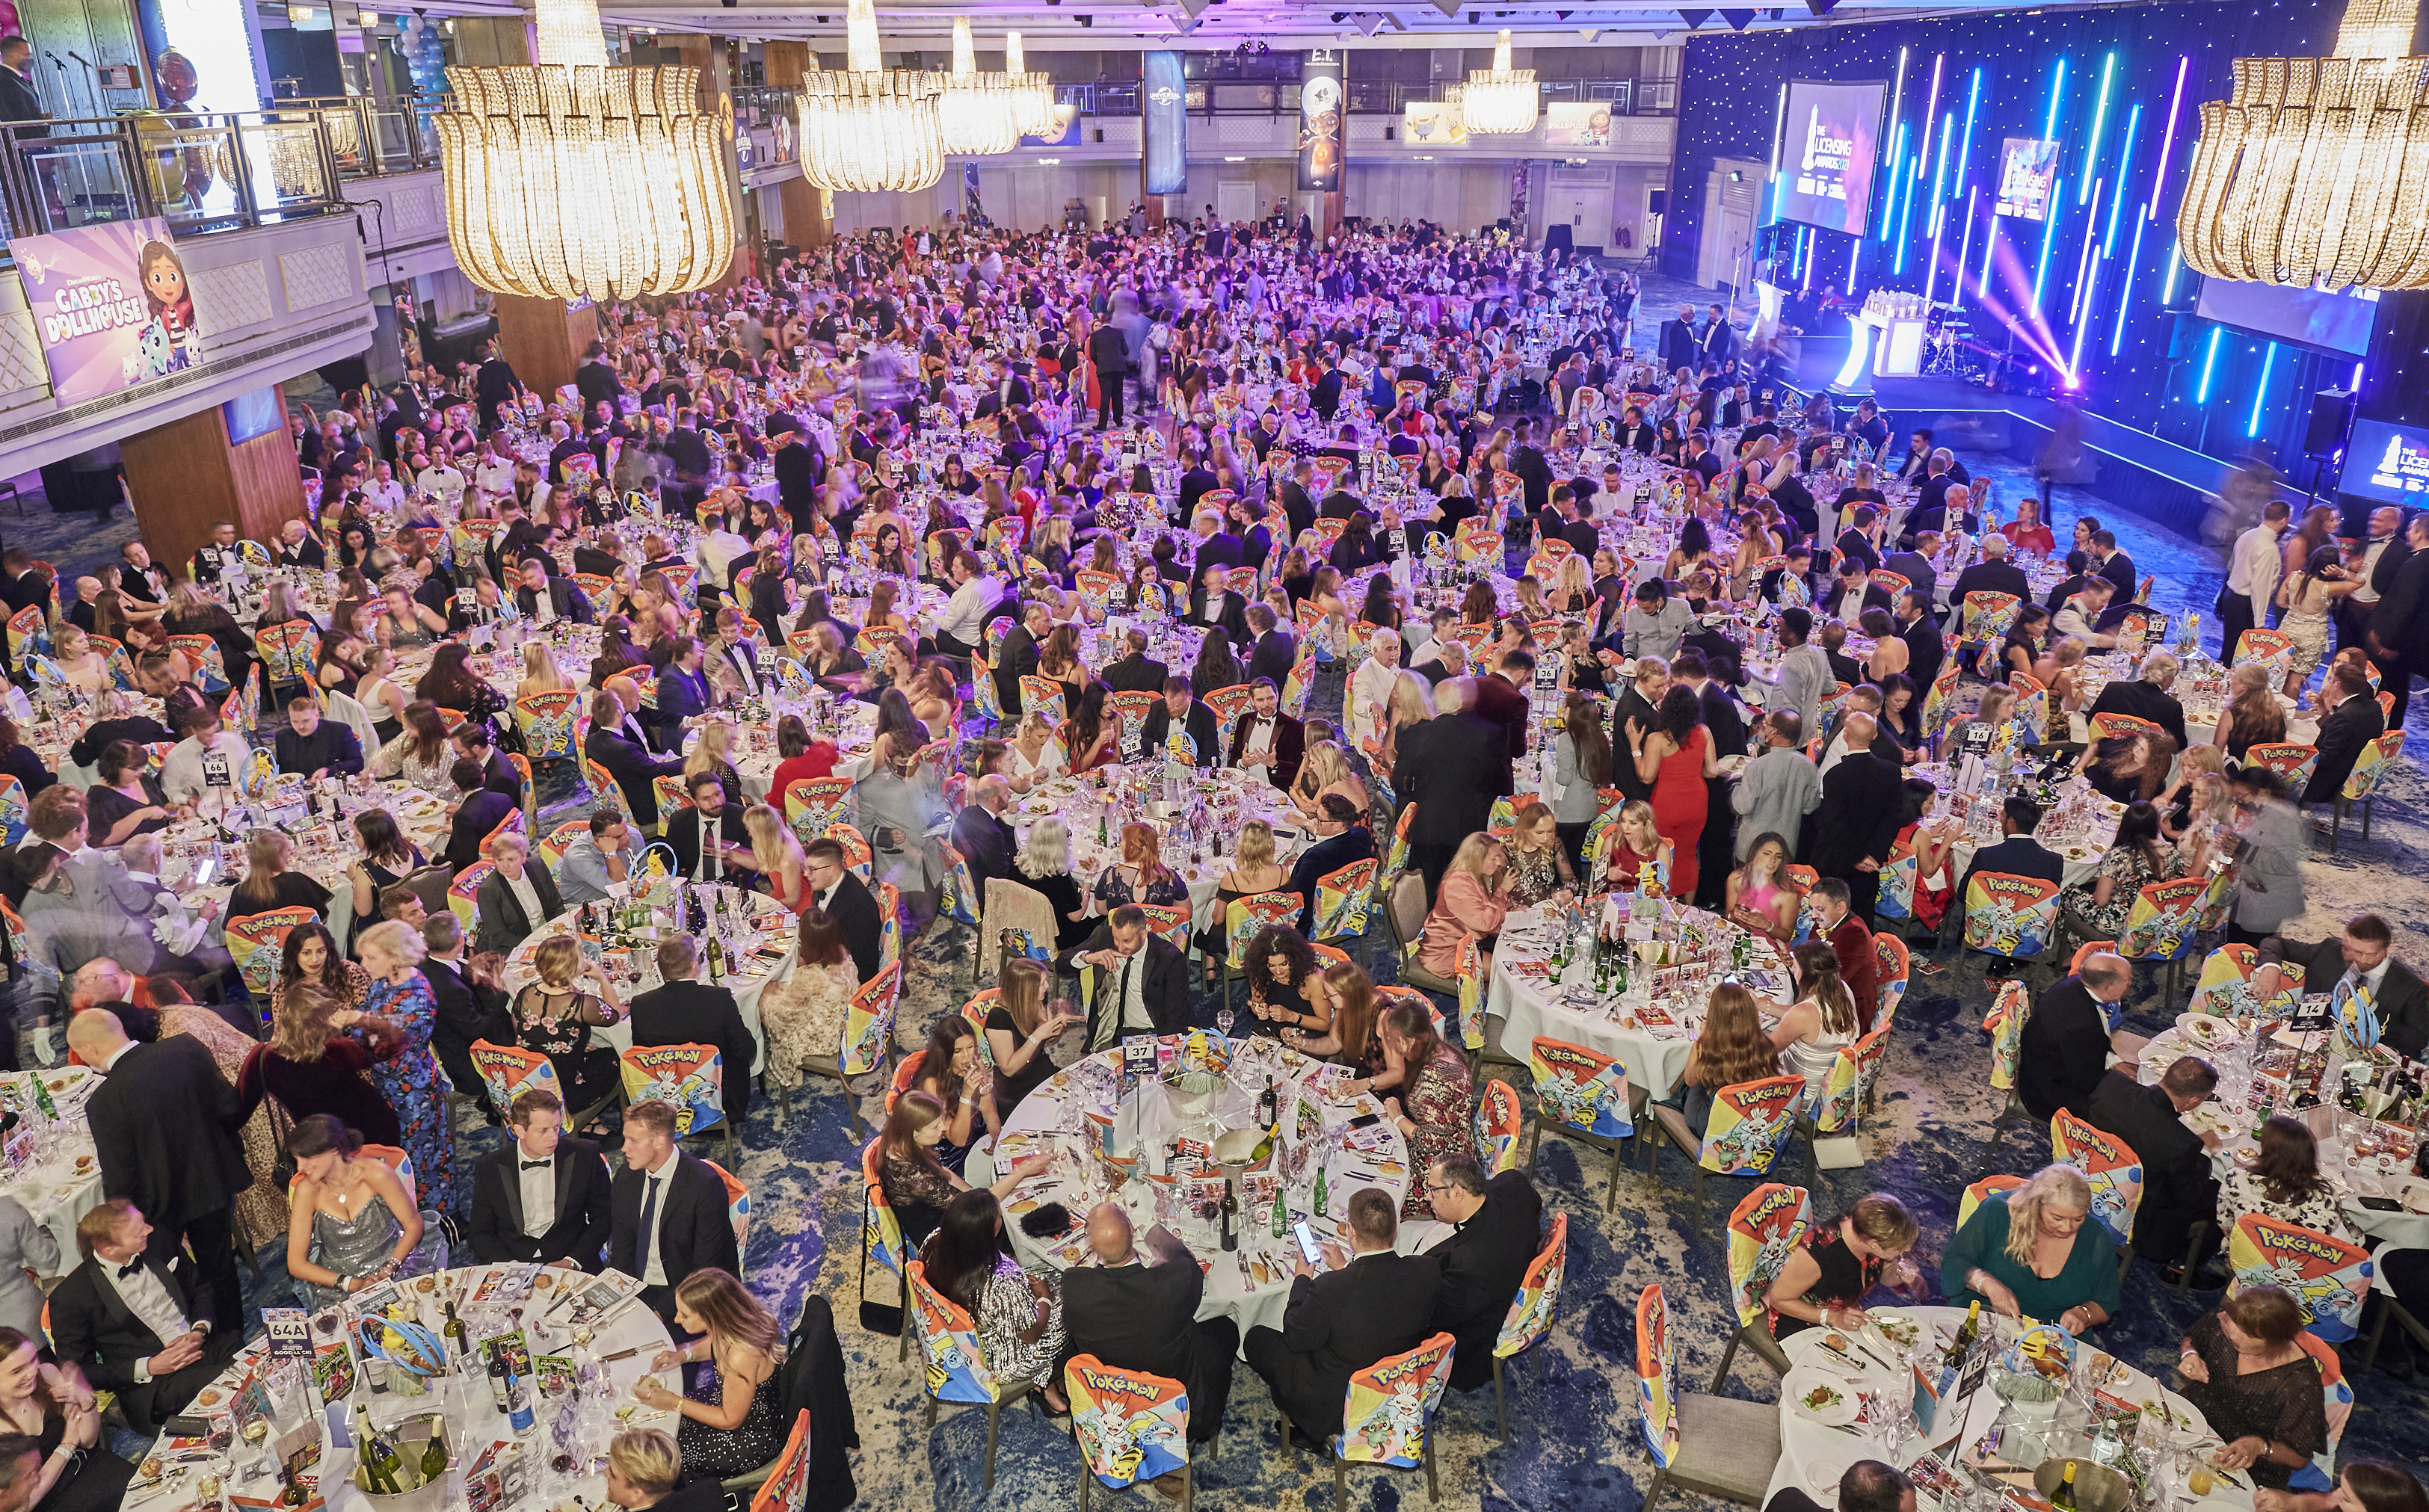 Above: Some 1,000 people attended The Licensing Awards earlier this week.